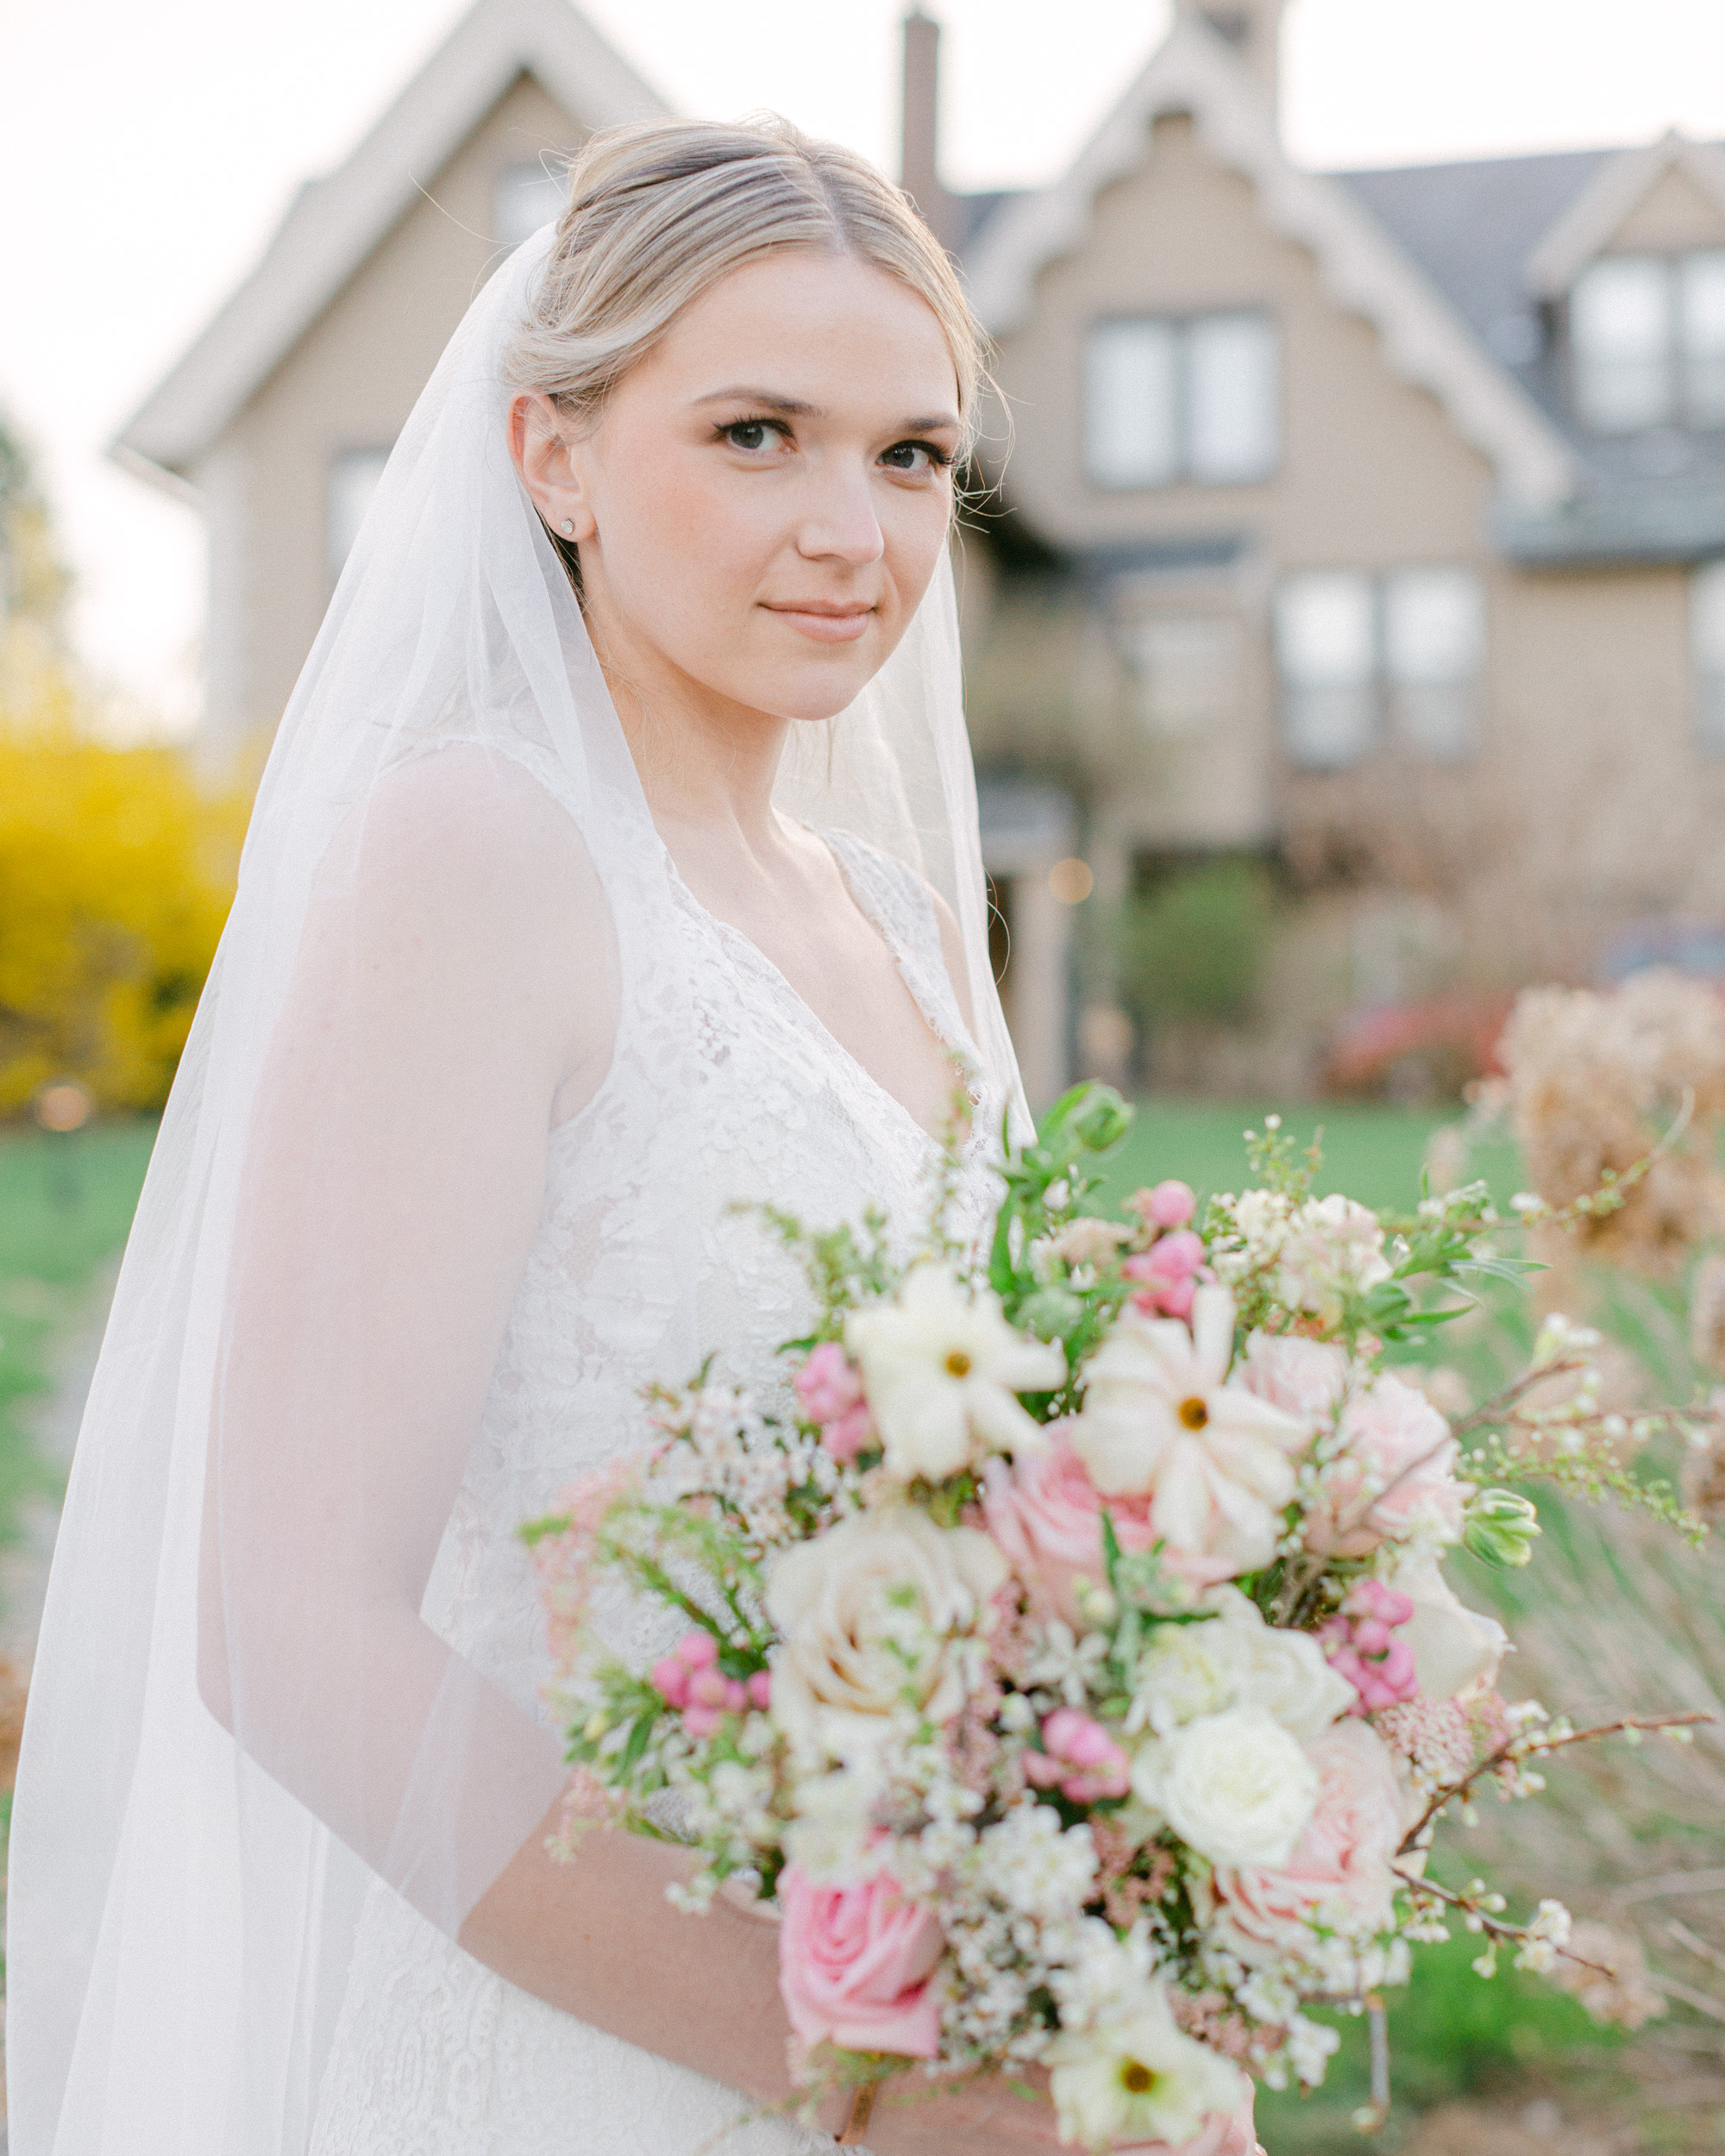 Elegant bride with a luxurious spring bouquet in front of the carriage house at the Sayre Mansion in Bethlehem, PA by Laura Billingham Photography